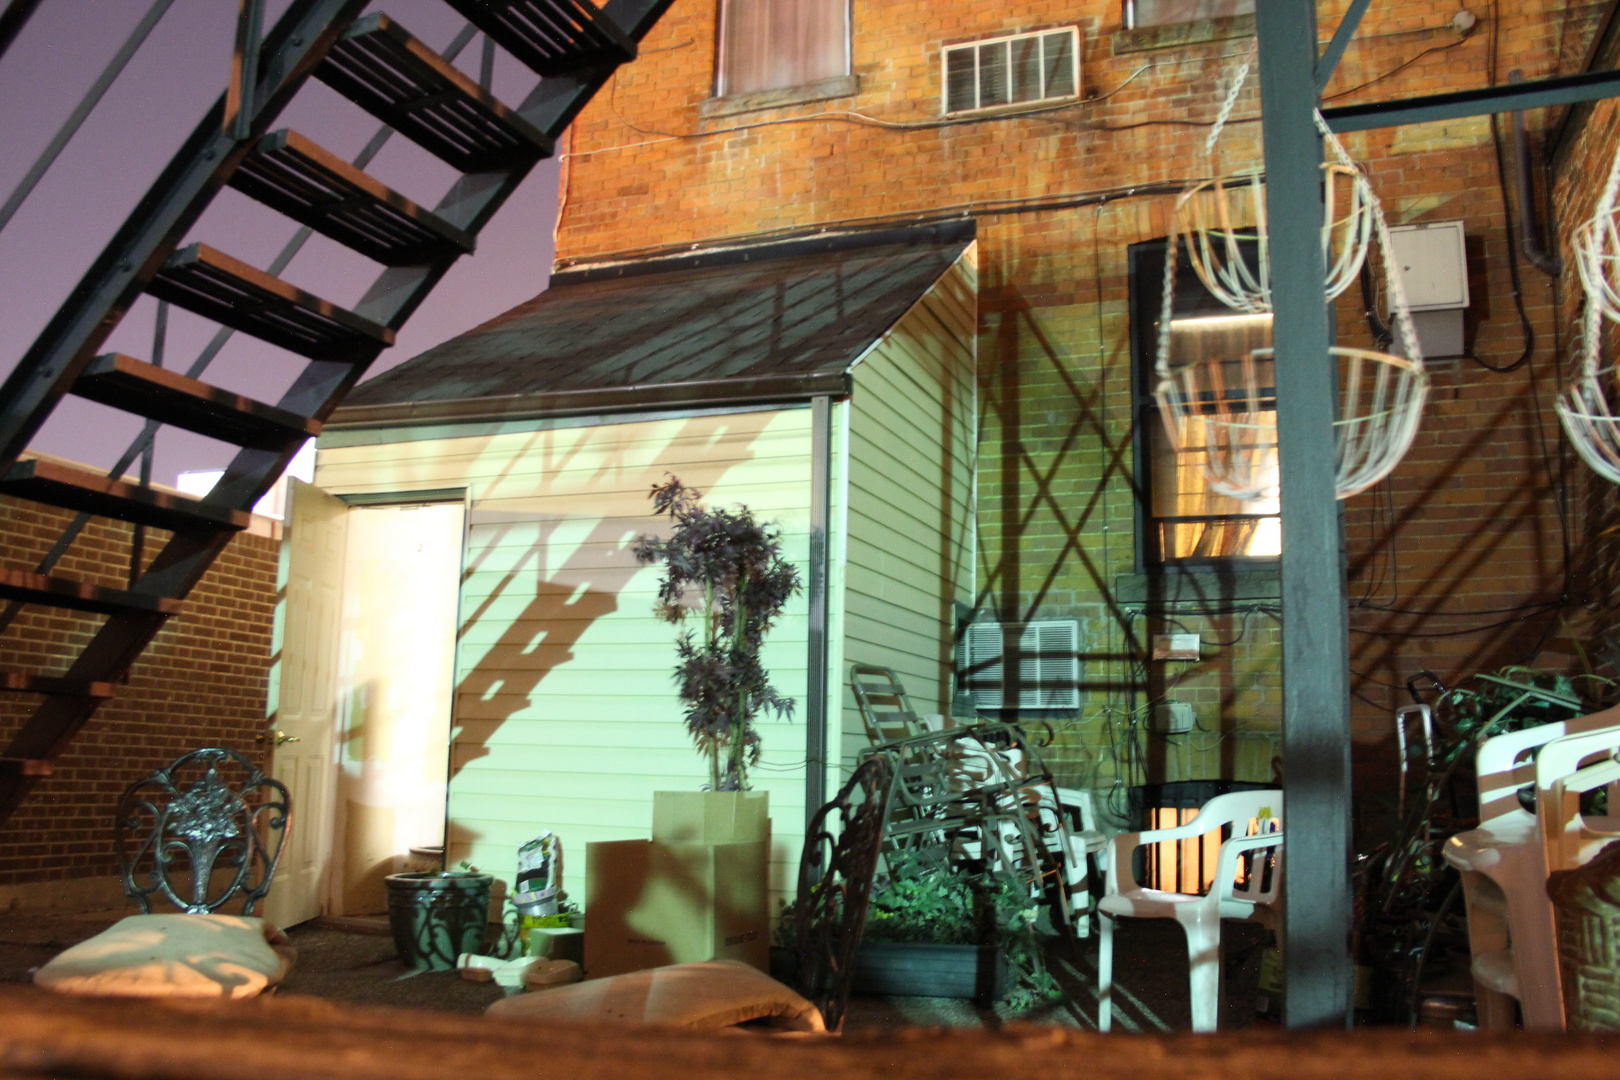 Our Back Yard of the Hostel at Night